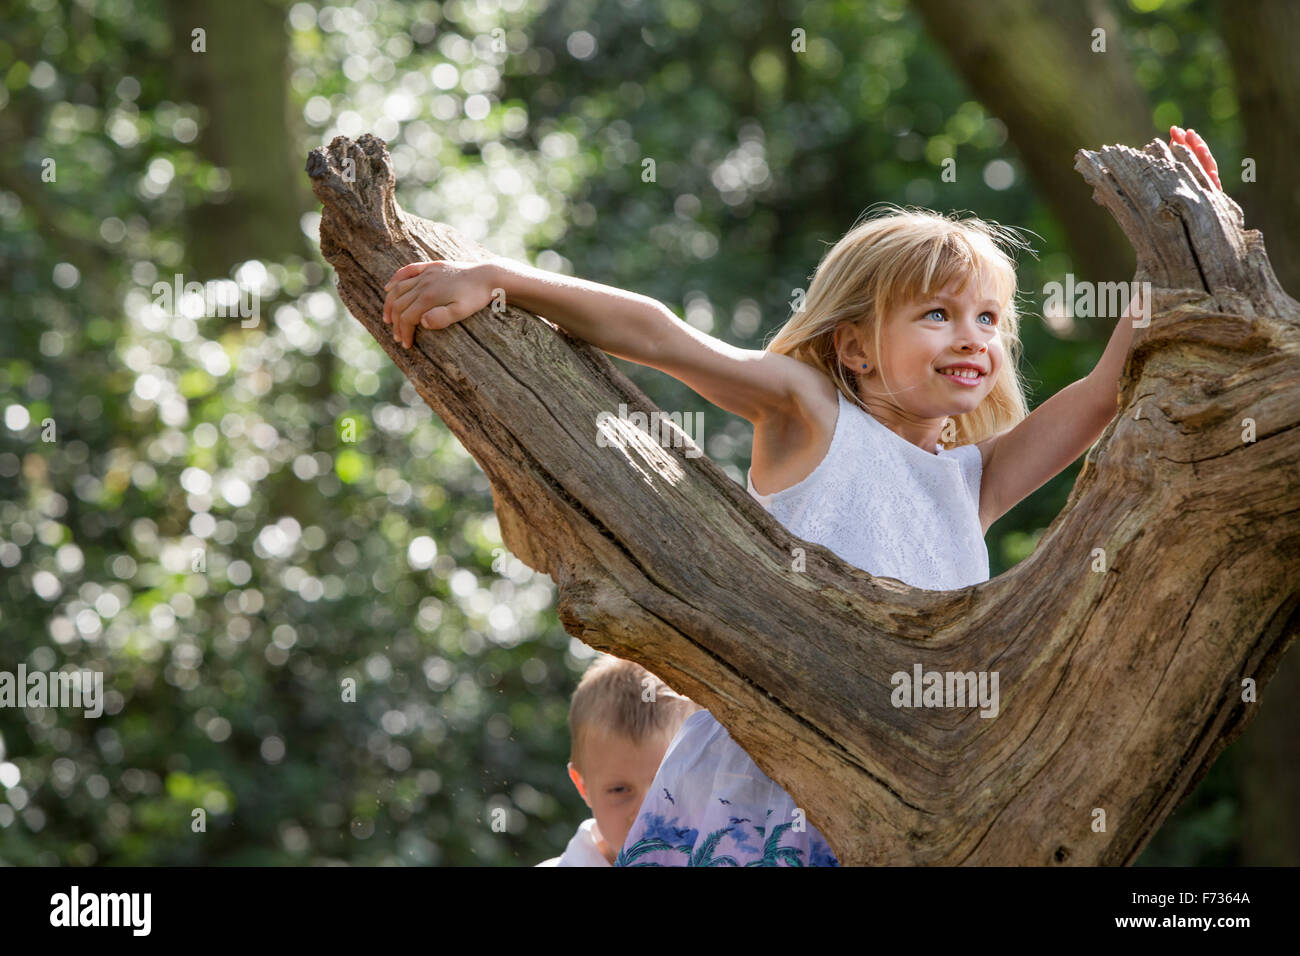 Young girl climbing a tree in a forest. - Stock Image